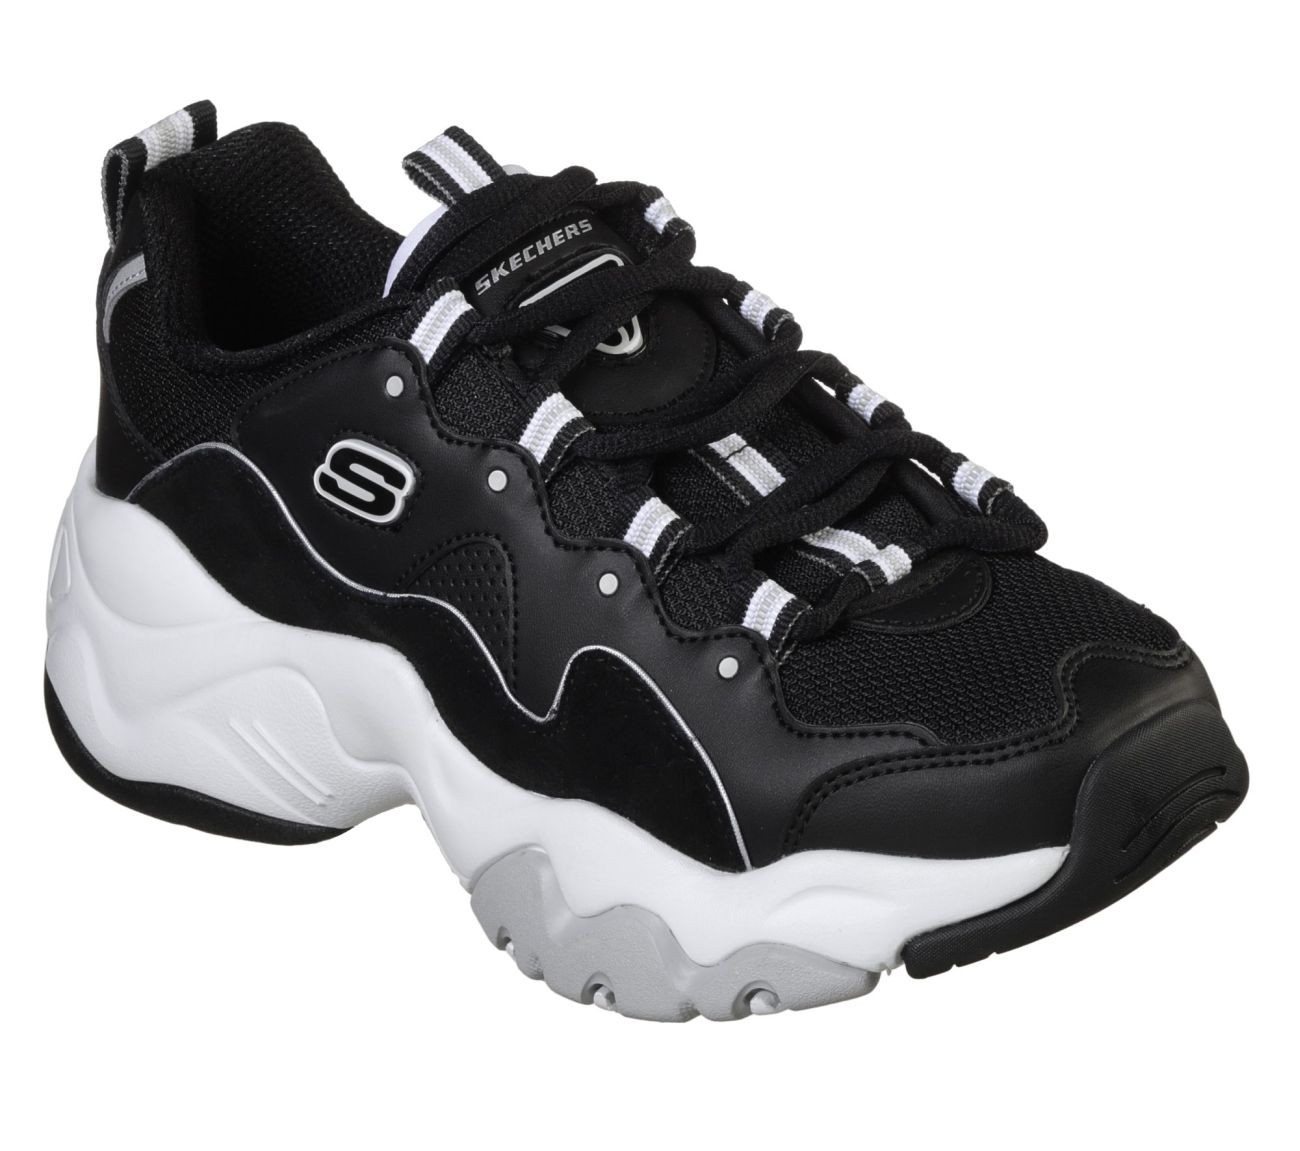 Women's D'Lites Biggest Fan Sneakers